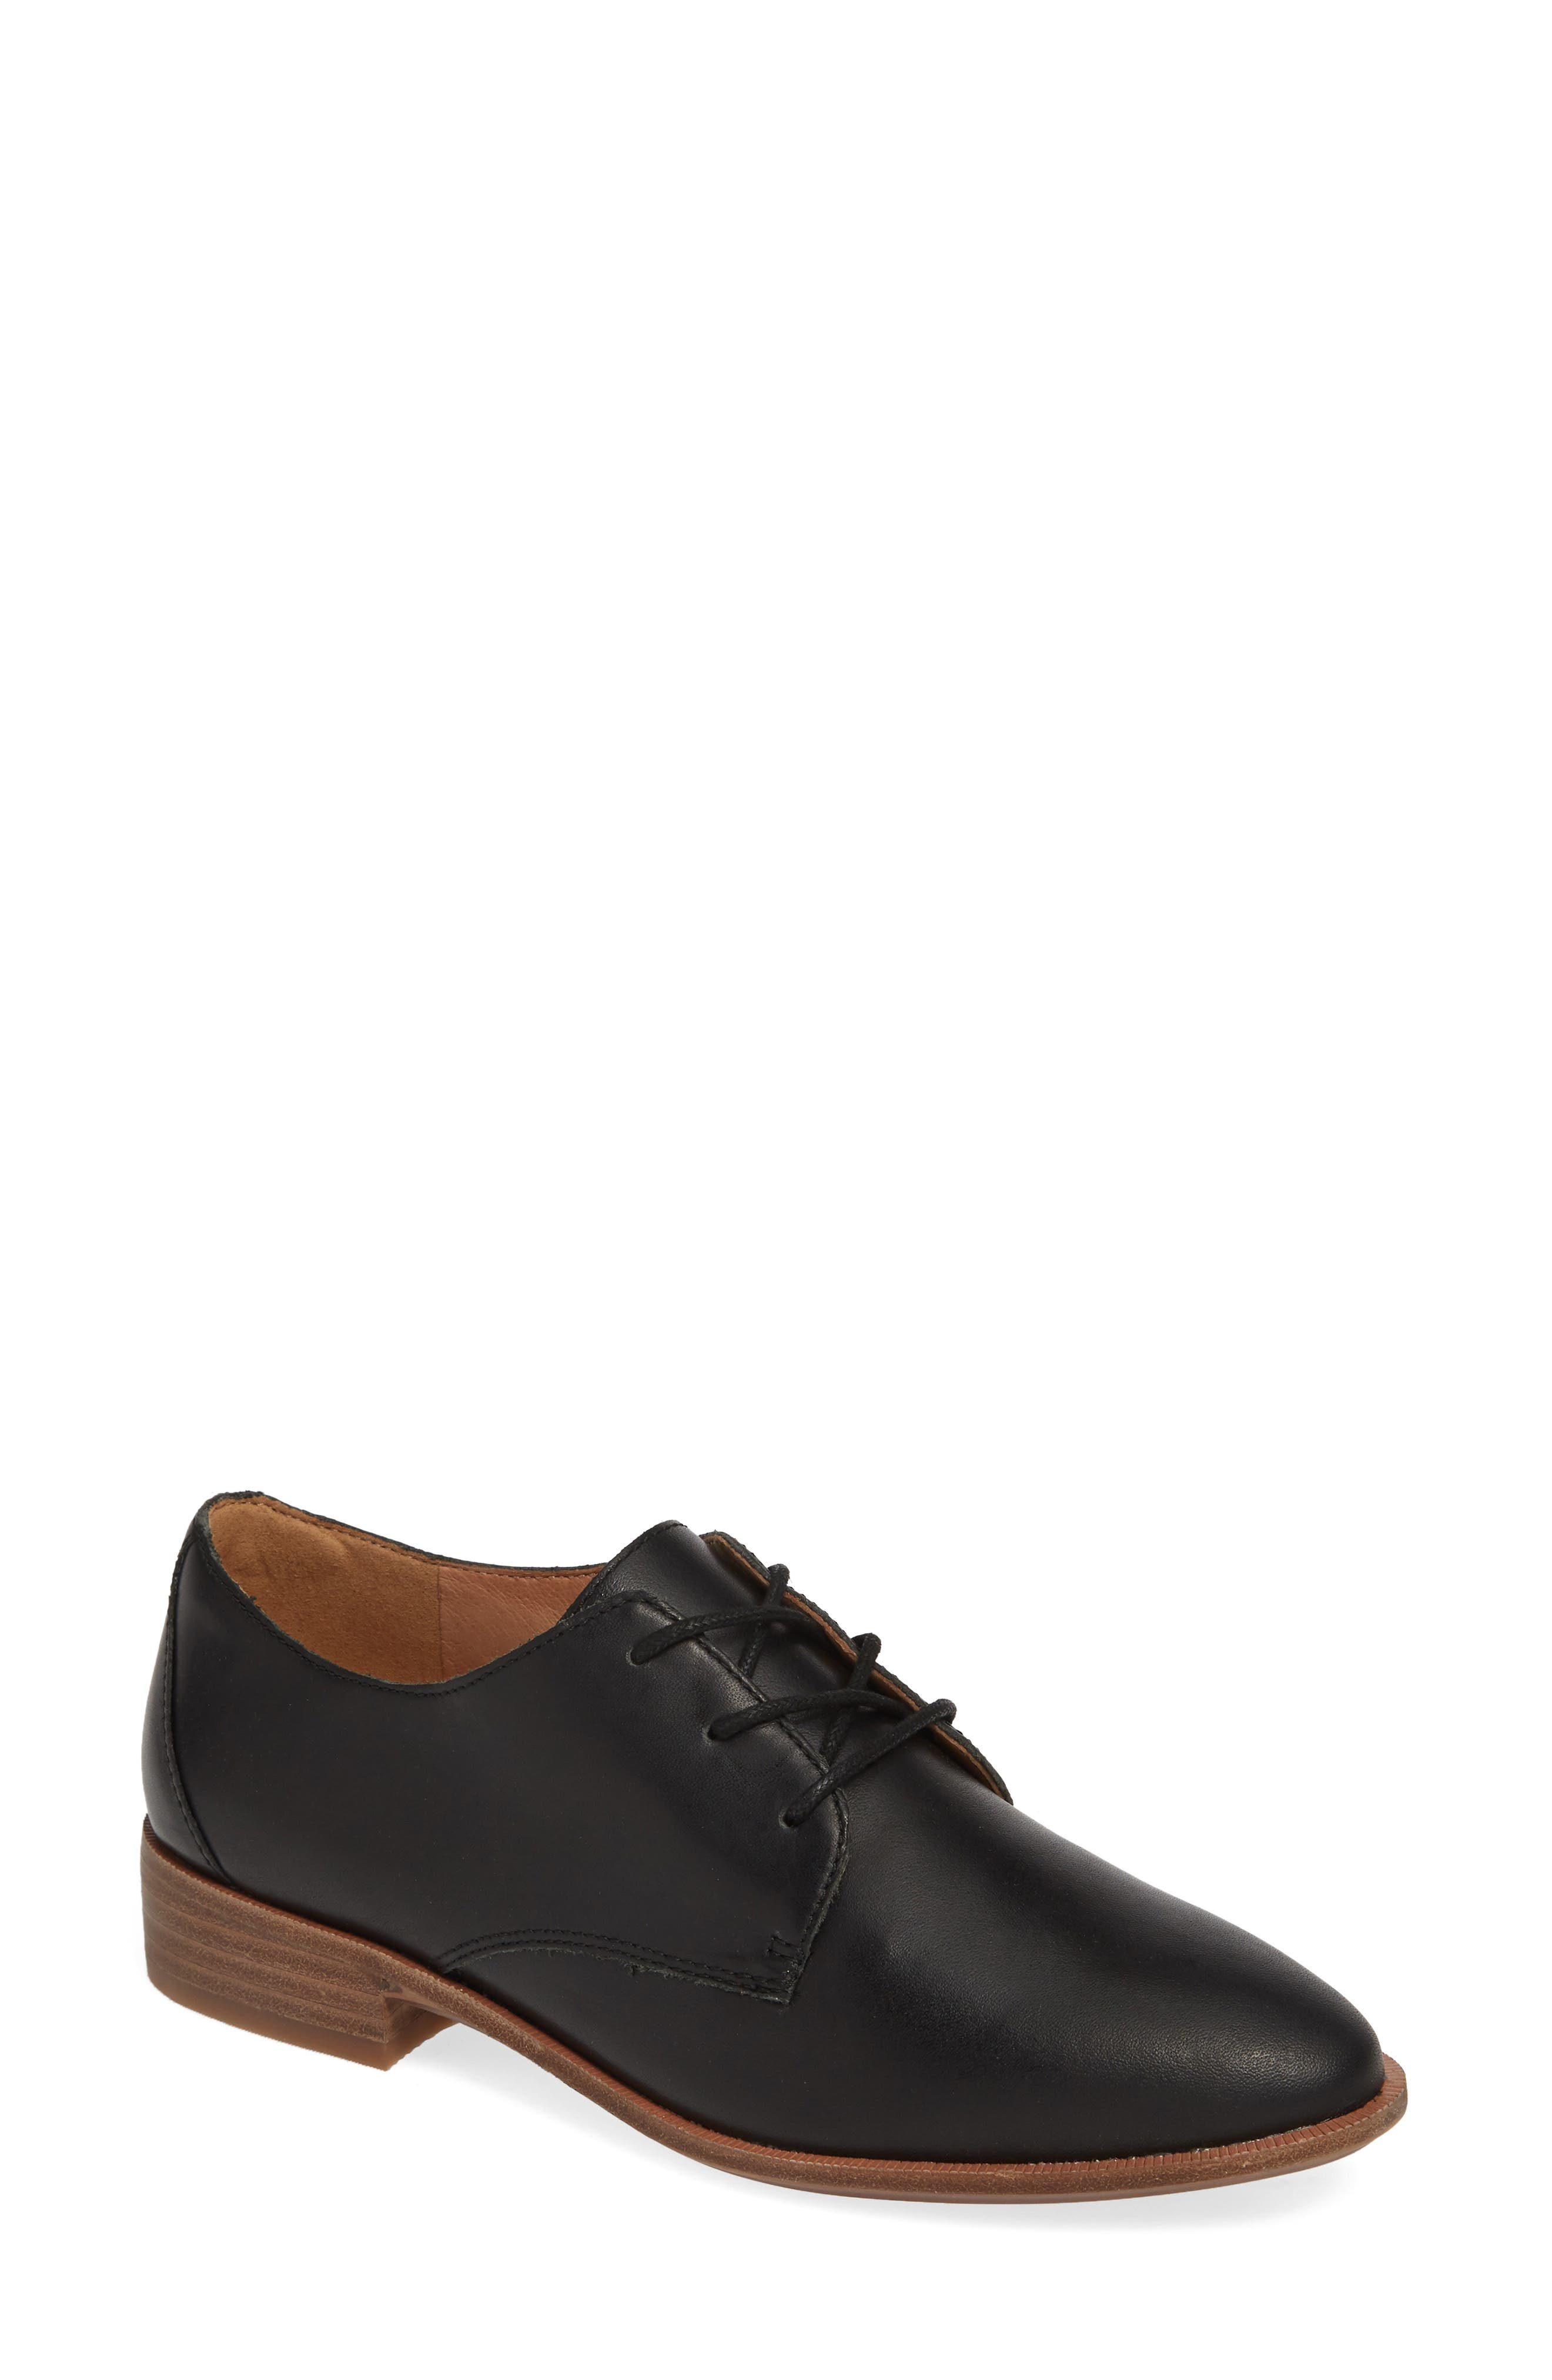 MADEWELL, The Frances Derby, Main thumbnail 1, color, TRUE BLACK